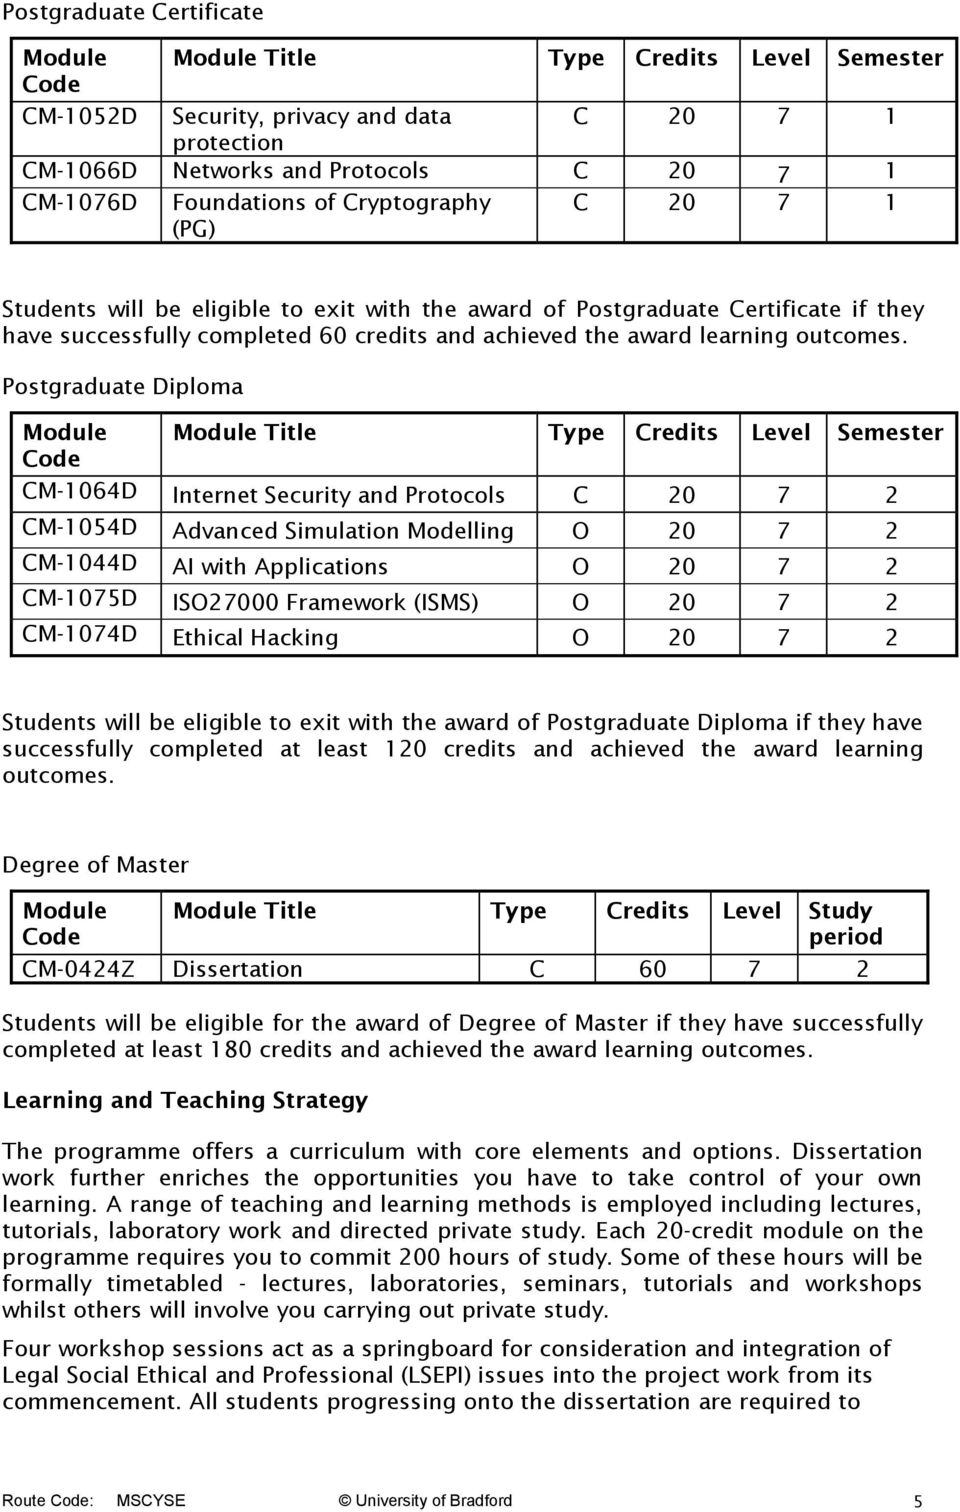 Postgraduate Diploma Module Module Title Type Credits Level Semester Code CM-1064D Internet Security and Protocols C 20 7 2 CM-1054D Advanced Simulation Modelling O 20 7 2 CM-1044D AI with